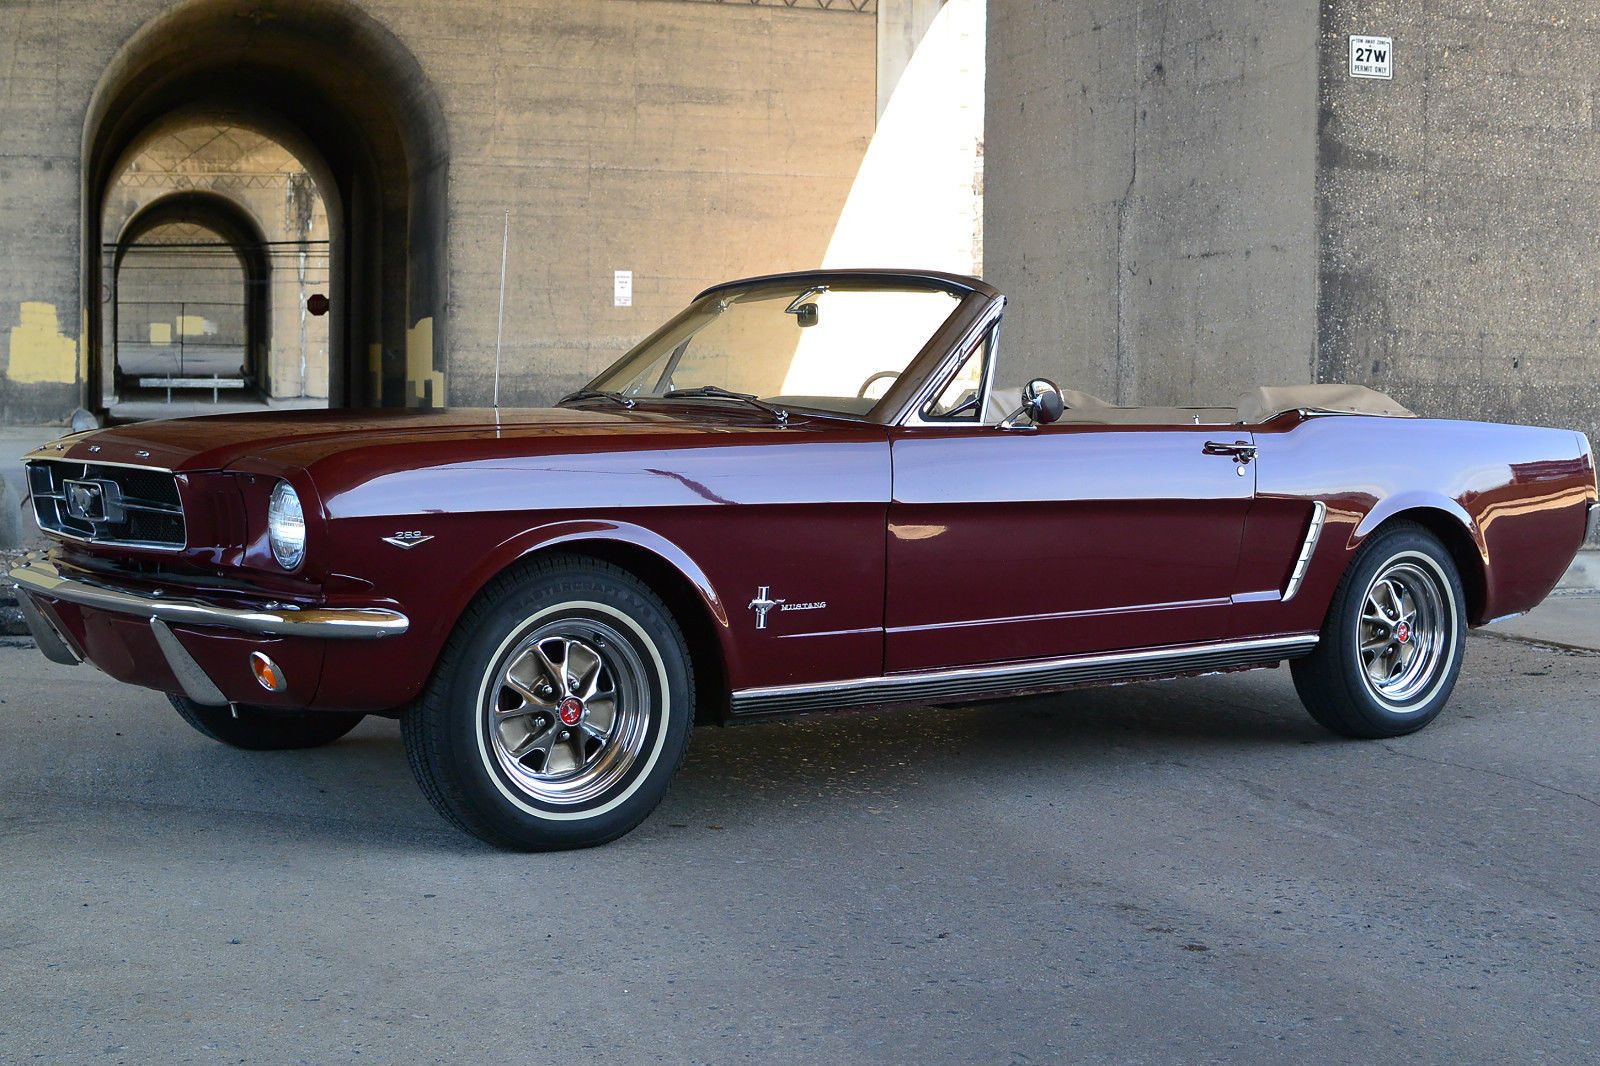 Pin By Olivia Corbin On Mustang Shelby Mustang Cars Mustang Convertible Classic Cars